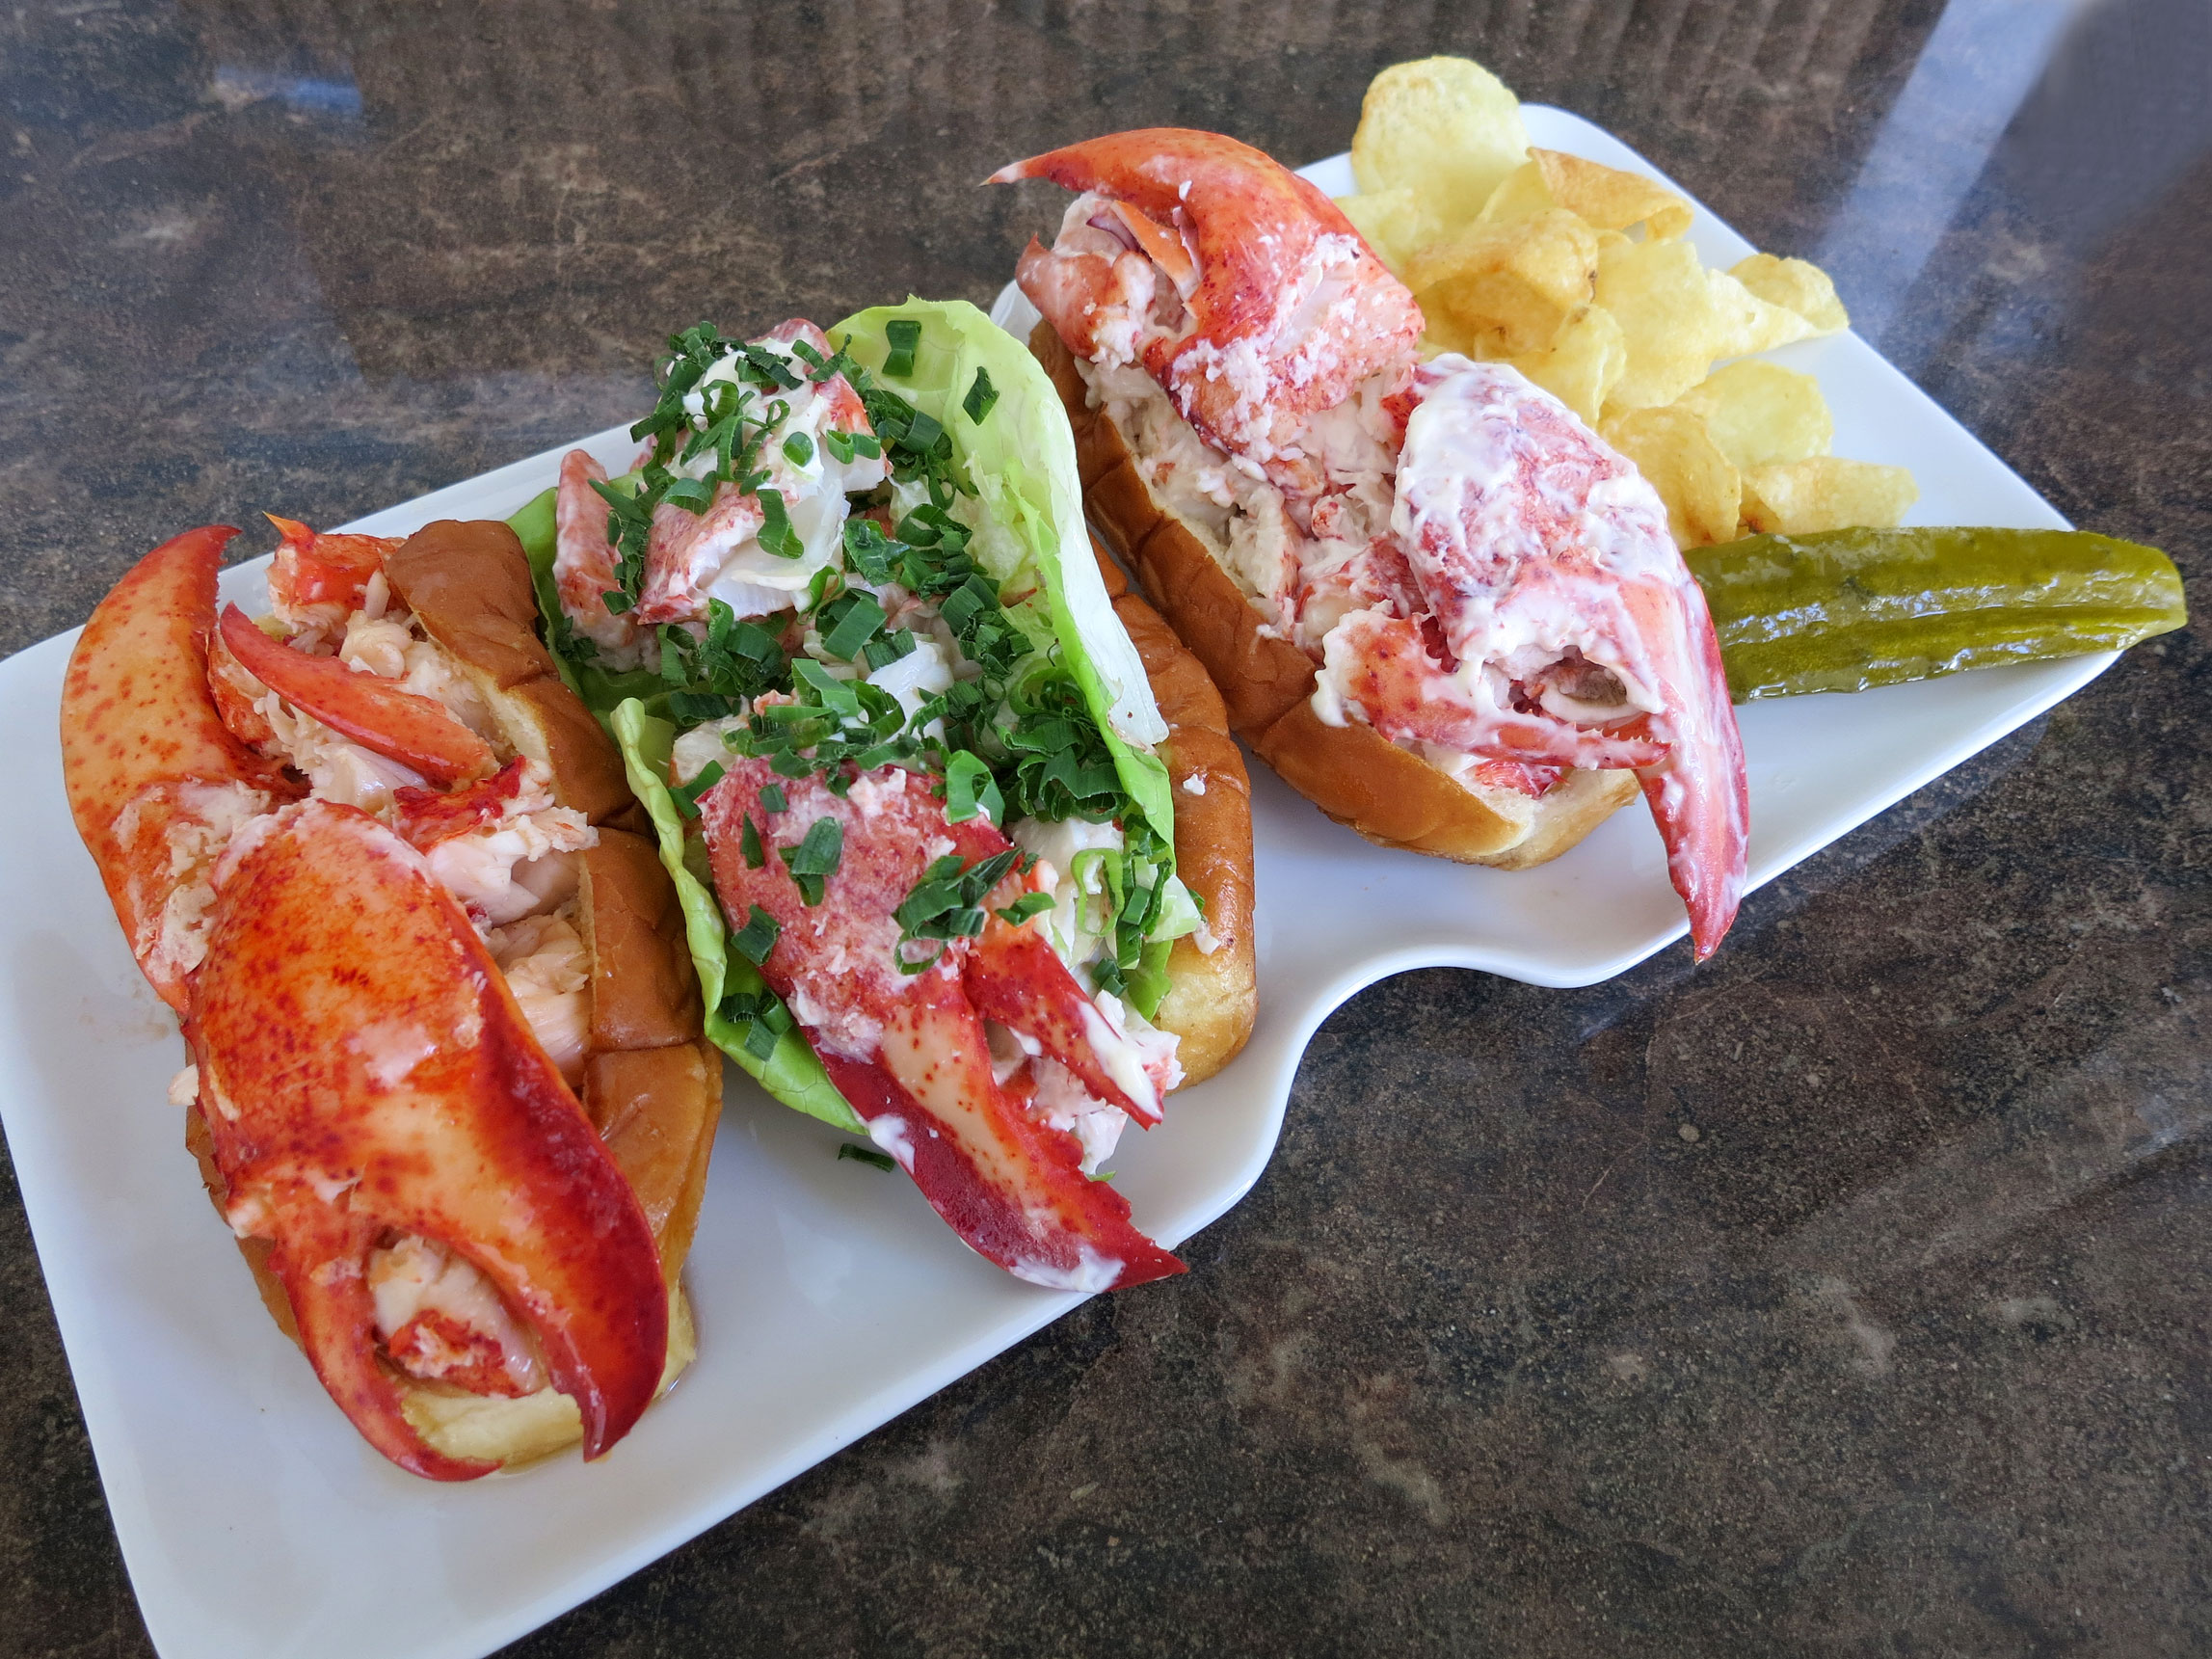 lobster rolls connecticut new england and maine style pomai s per ken lobster rolls left to right connecticut style new england style and maine style served maui style potato chips and dill pickle